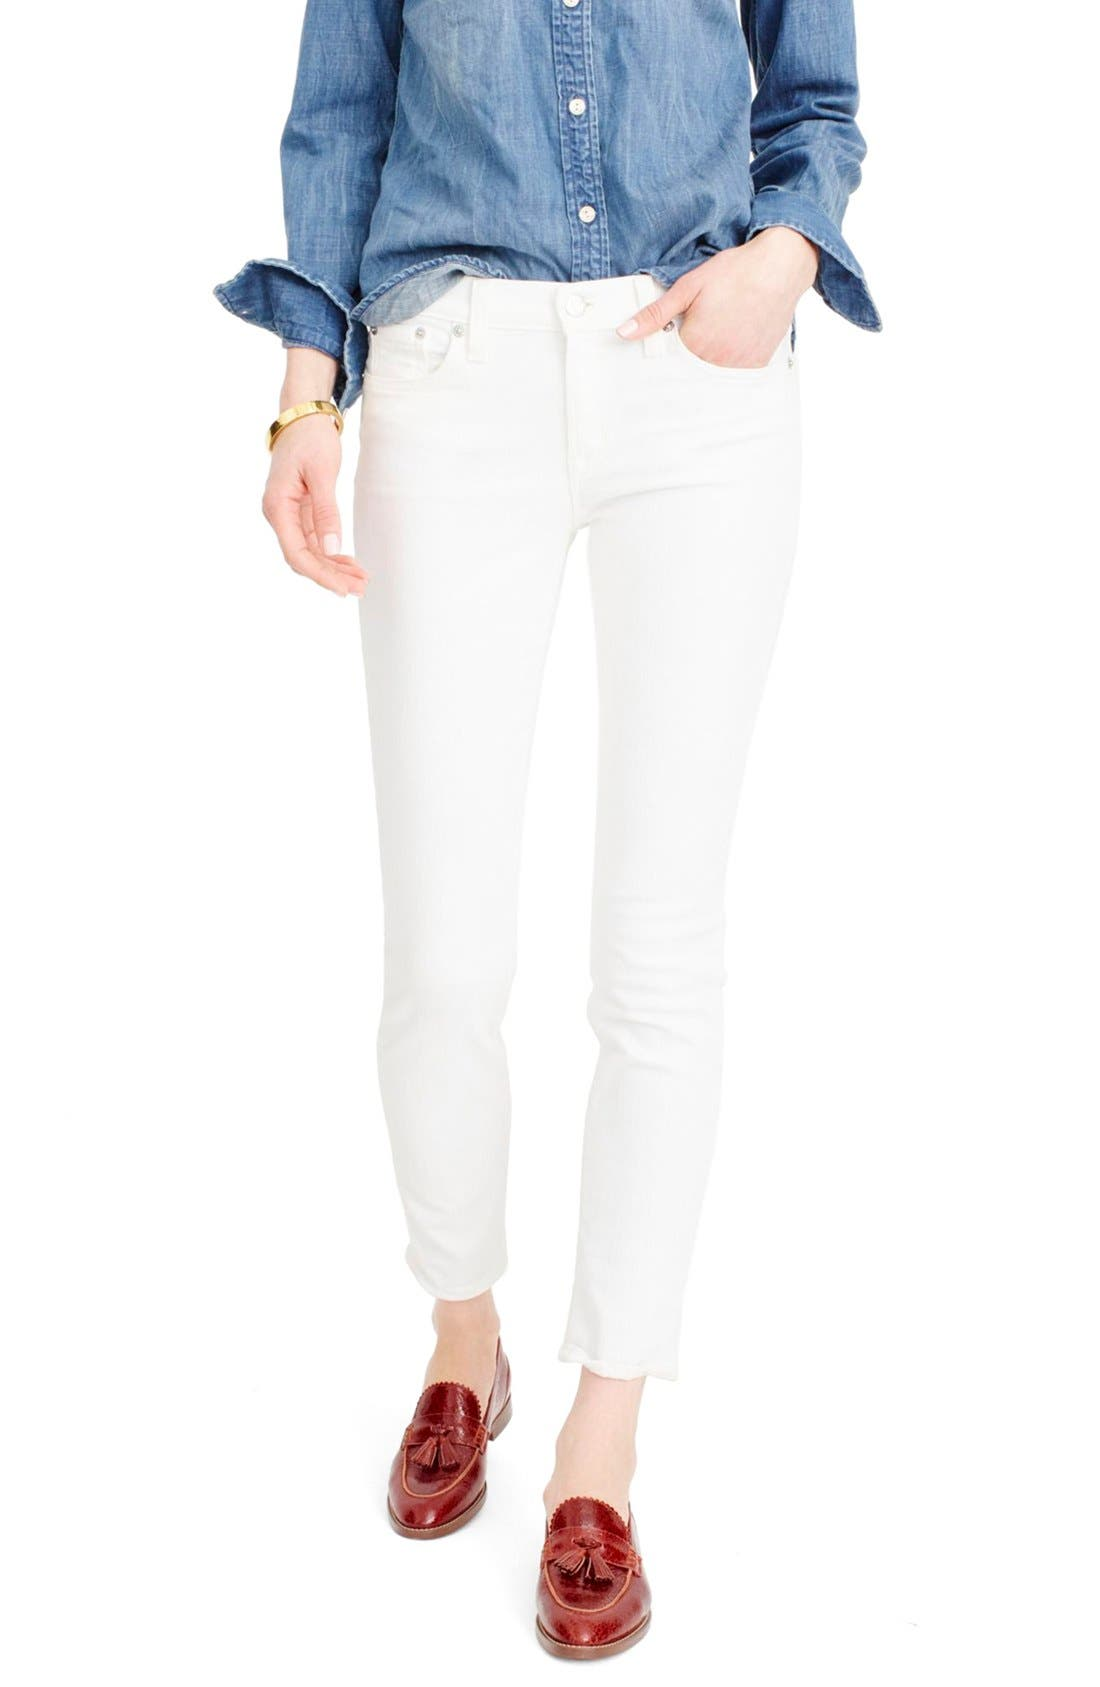 J.Crew Toothpick Jeans,                         Main,                         color, White